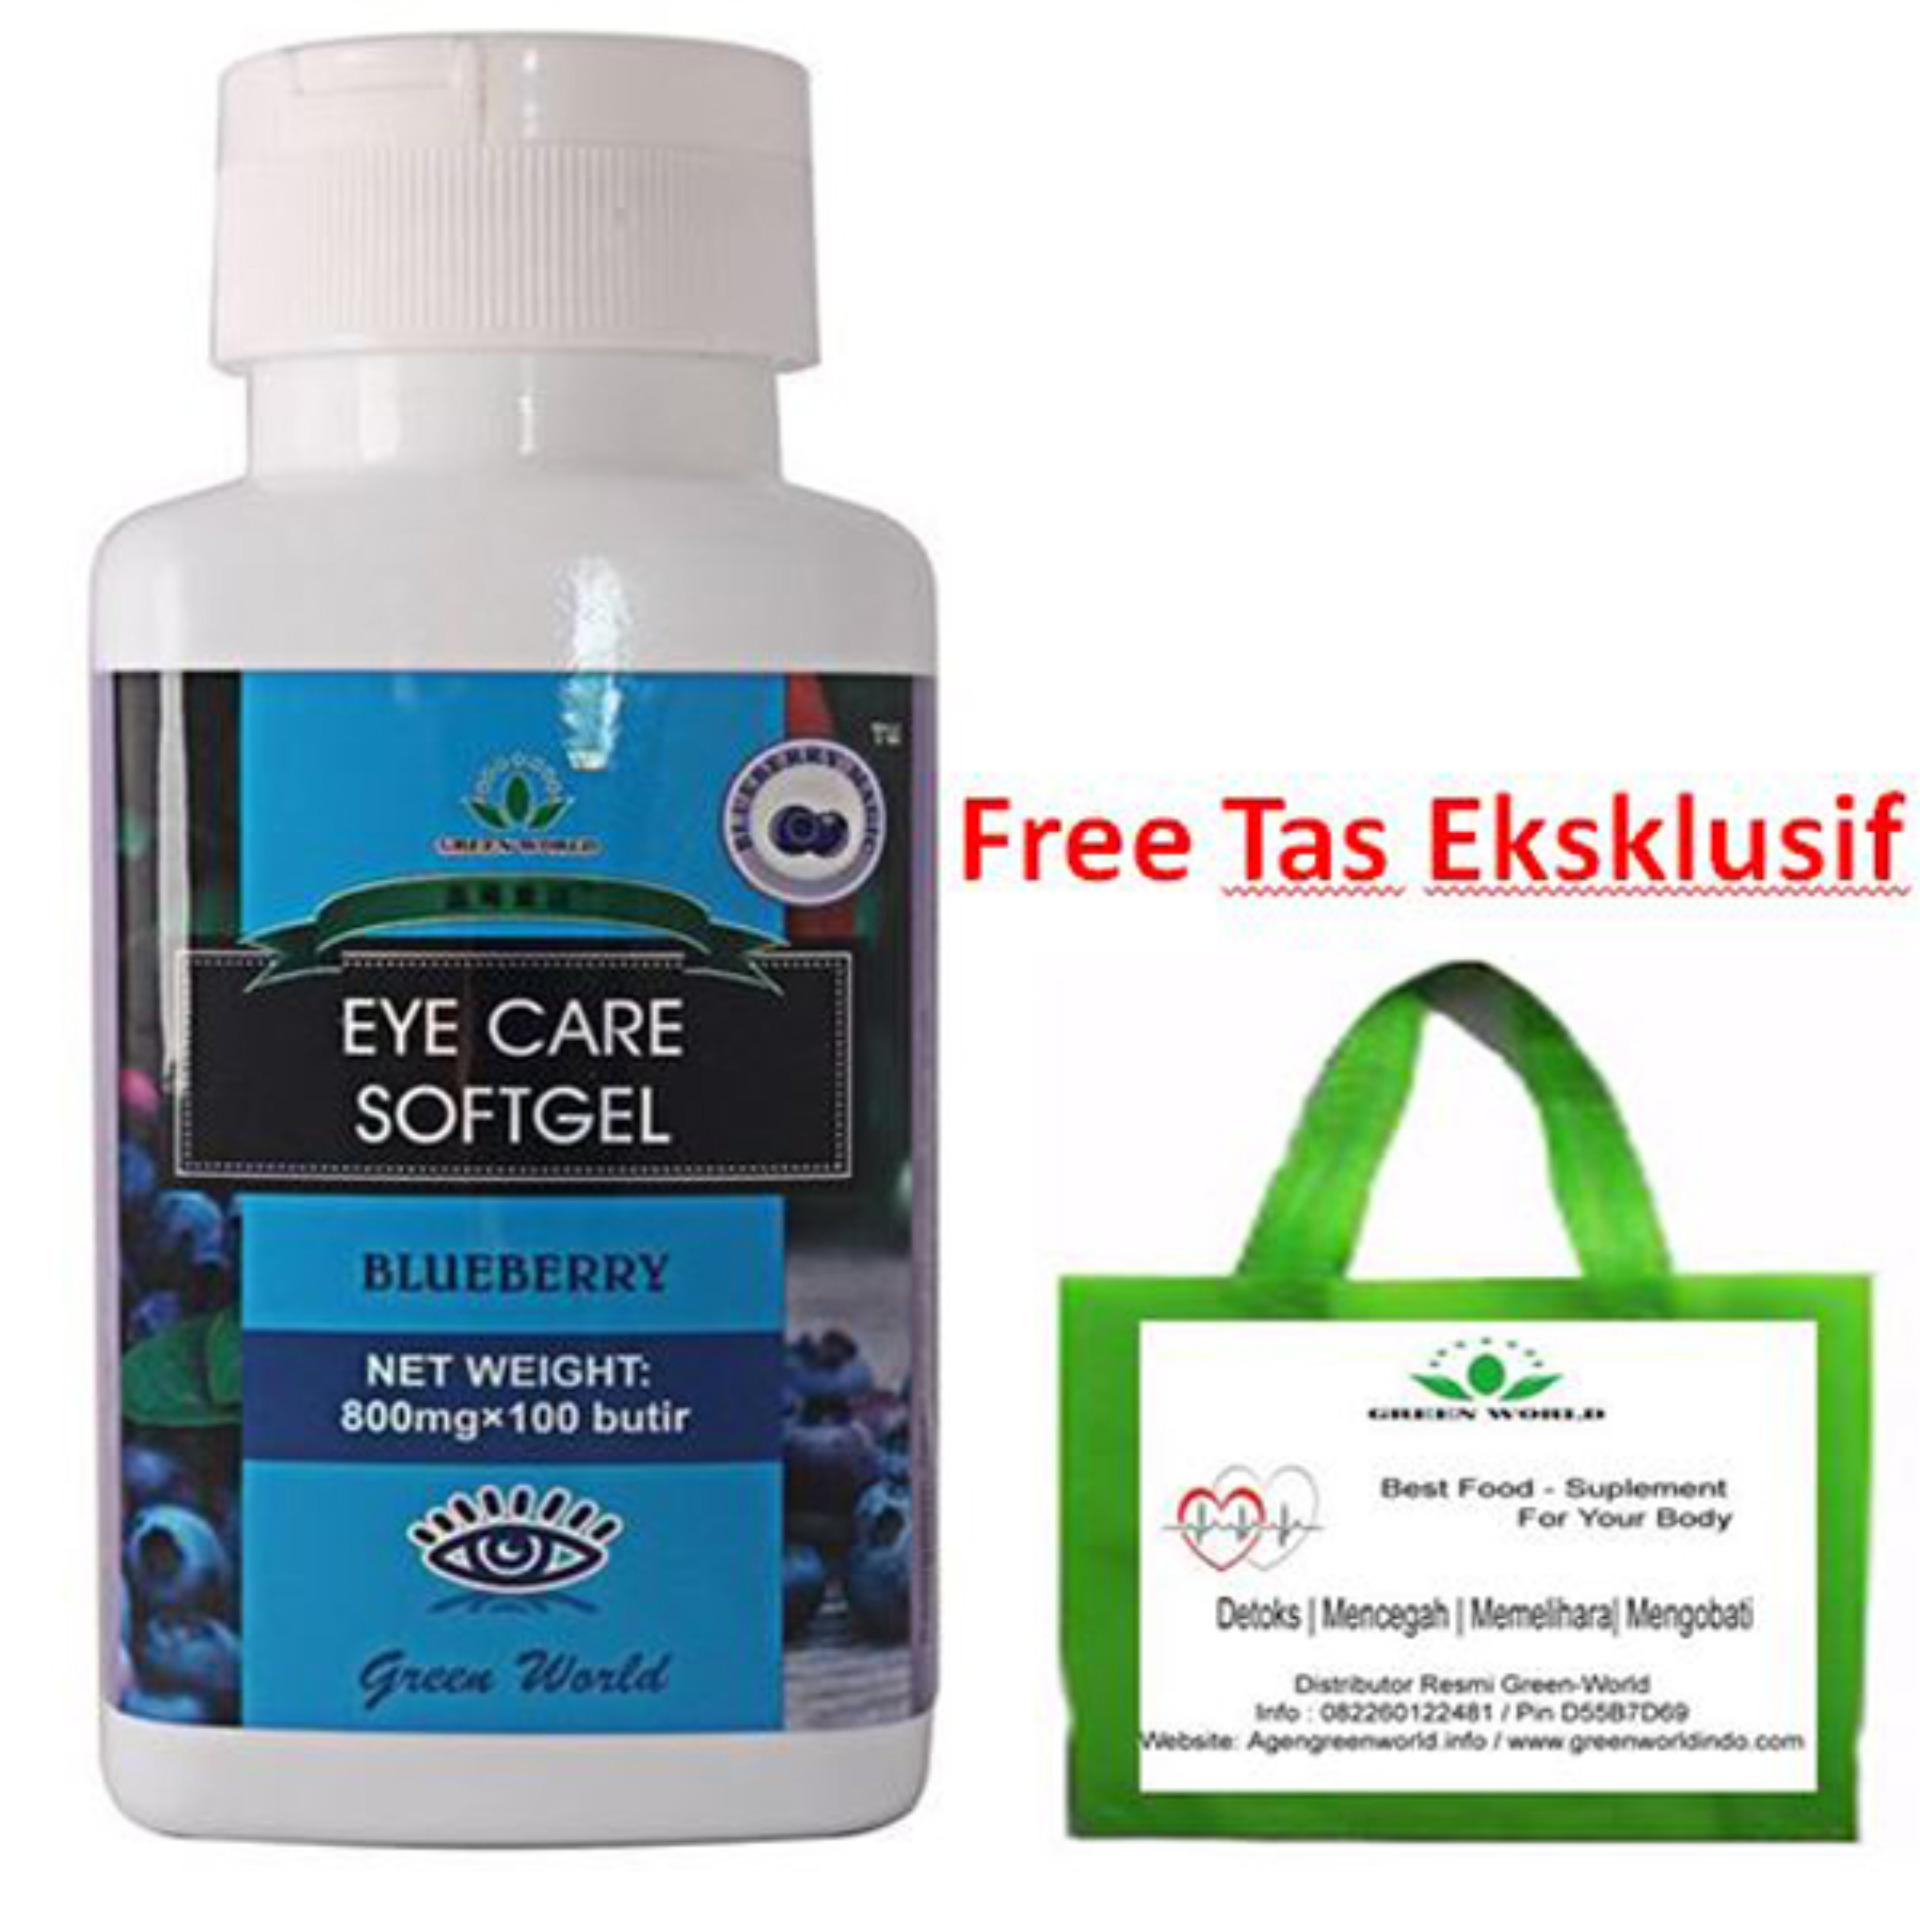 Harga Green World Eye Care Softgel Bonus Tas Ekslusif Green World